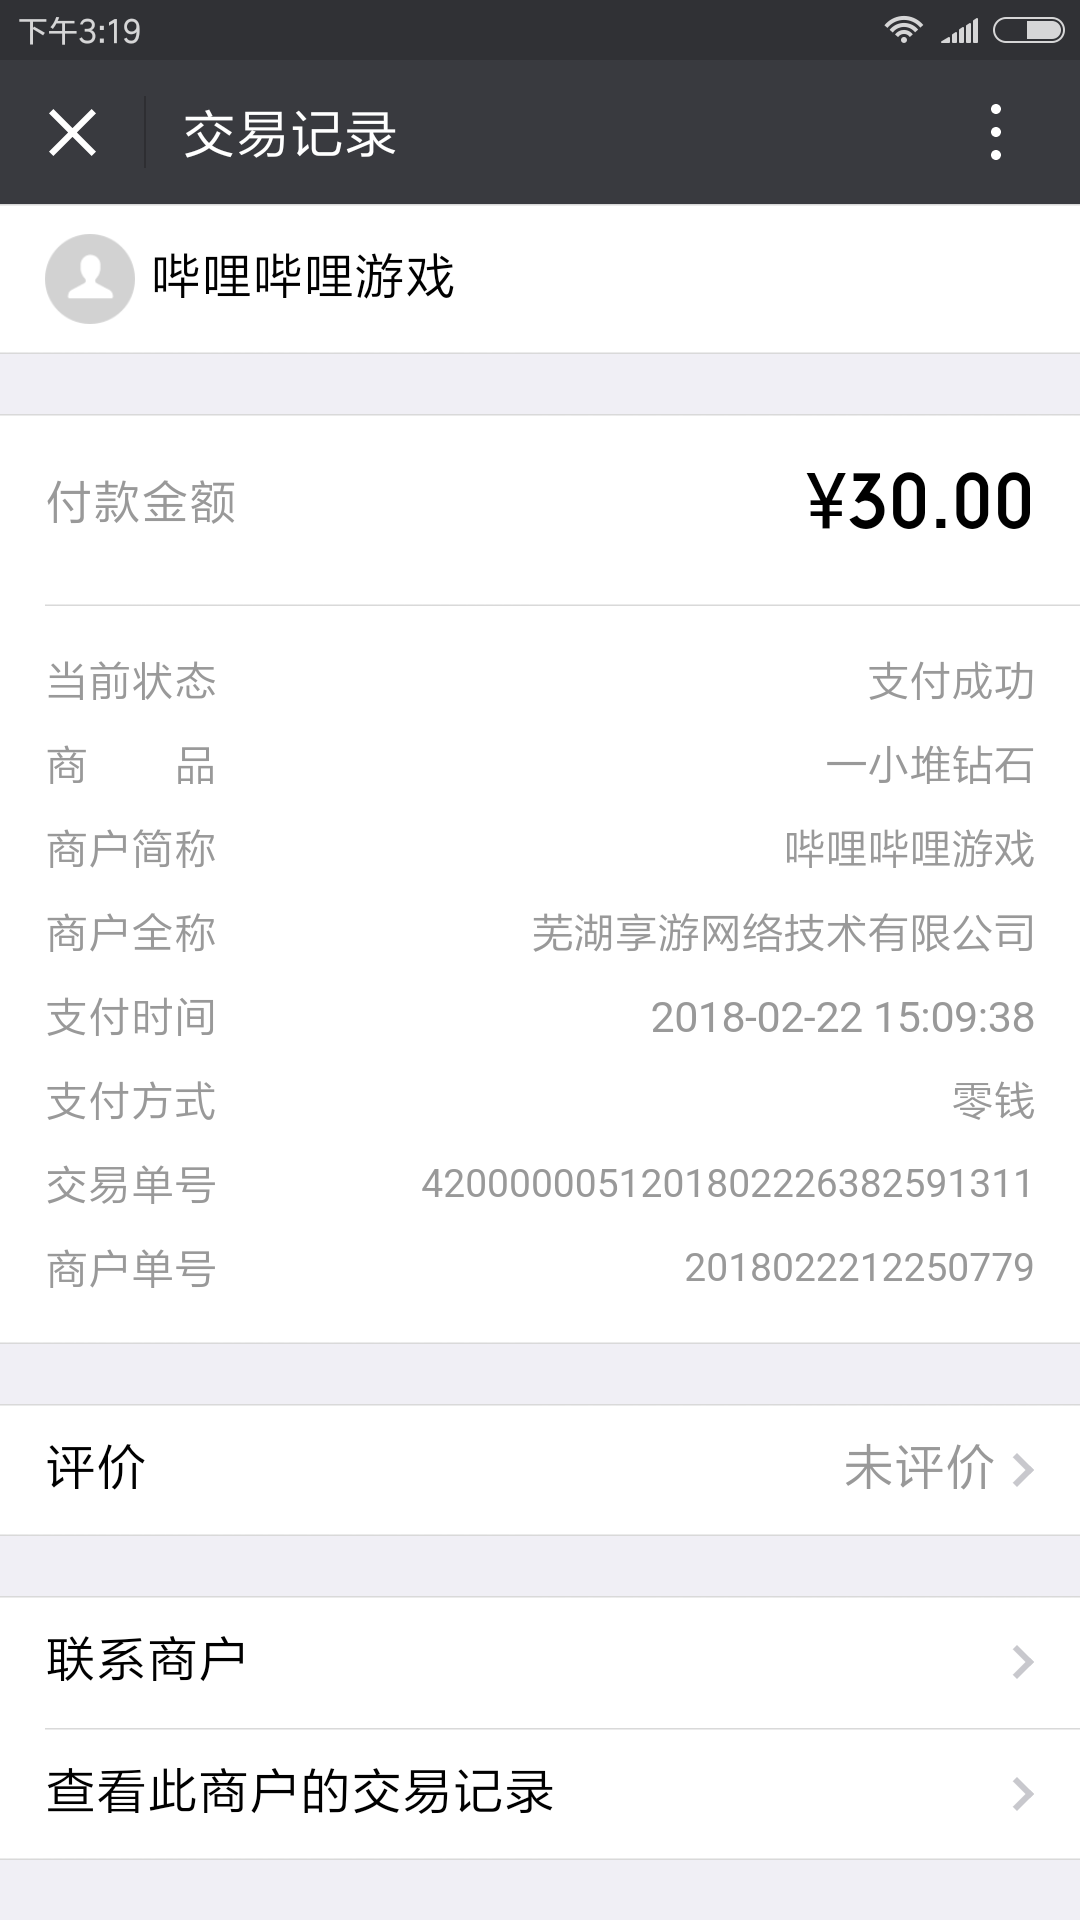 Screenshot_2018-02-22-15-19-16-158_com.tencent.mm.png